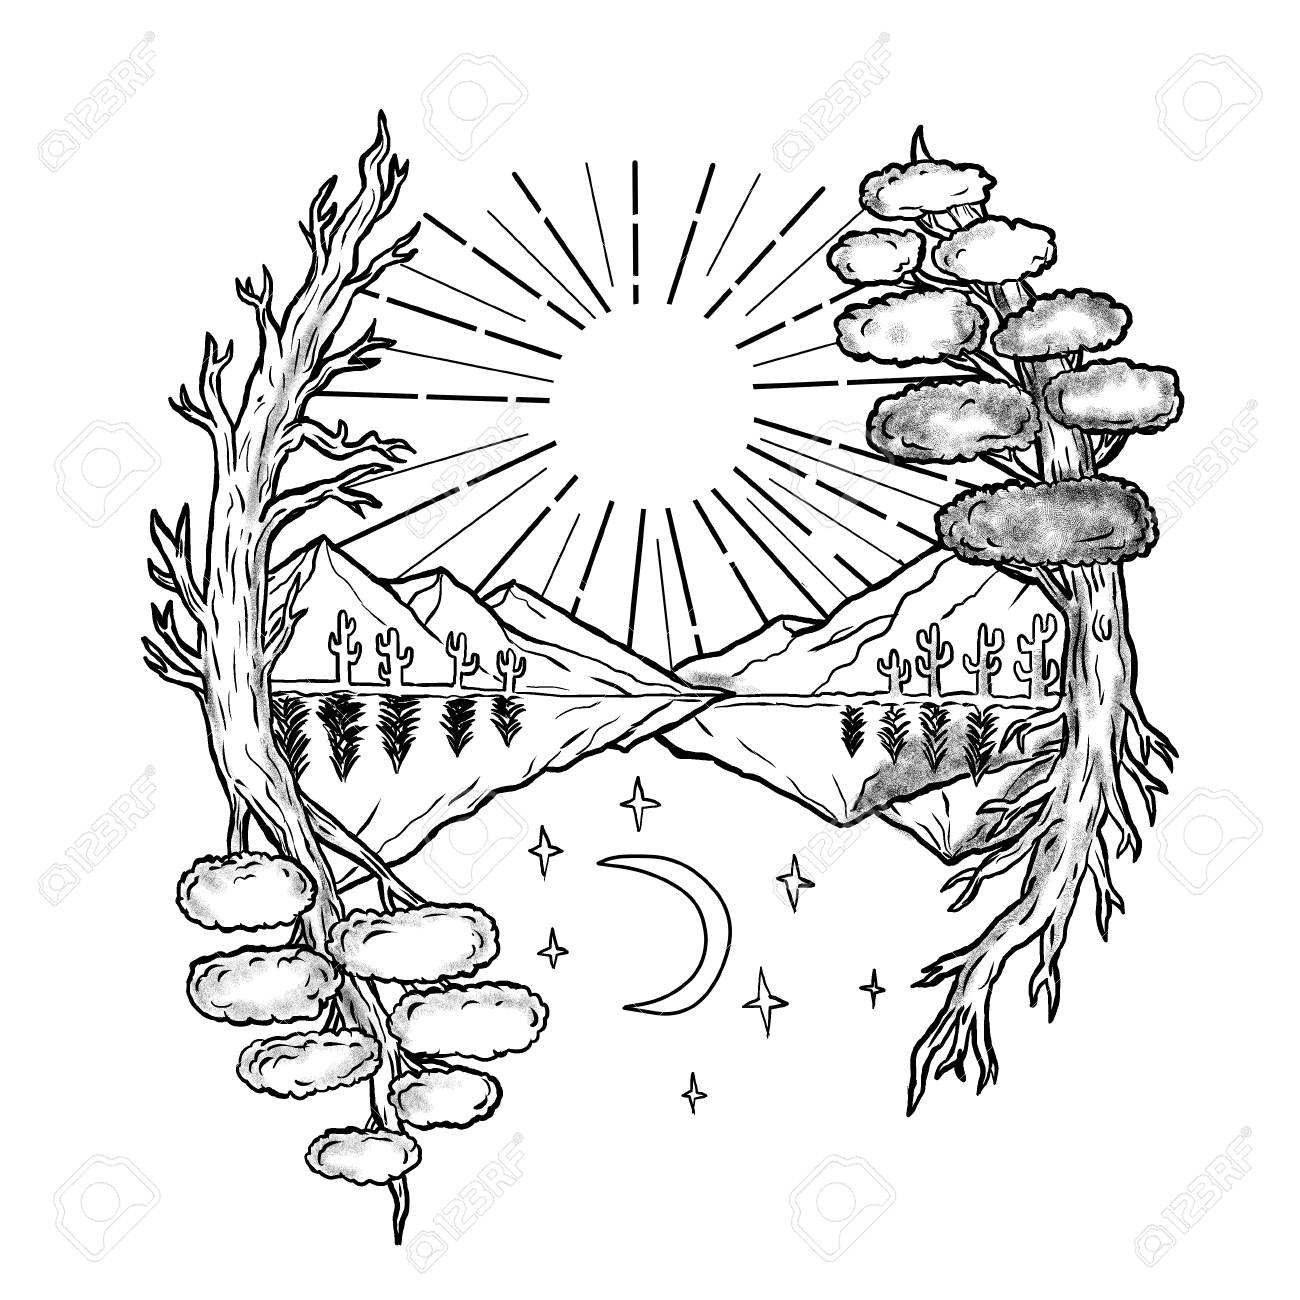 Tattoo style illustration of a day and night symbolism with sun tattoo style illustration of a day and night symbolism with sun trees and mountains on biocorpaavc